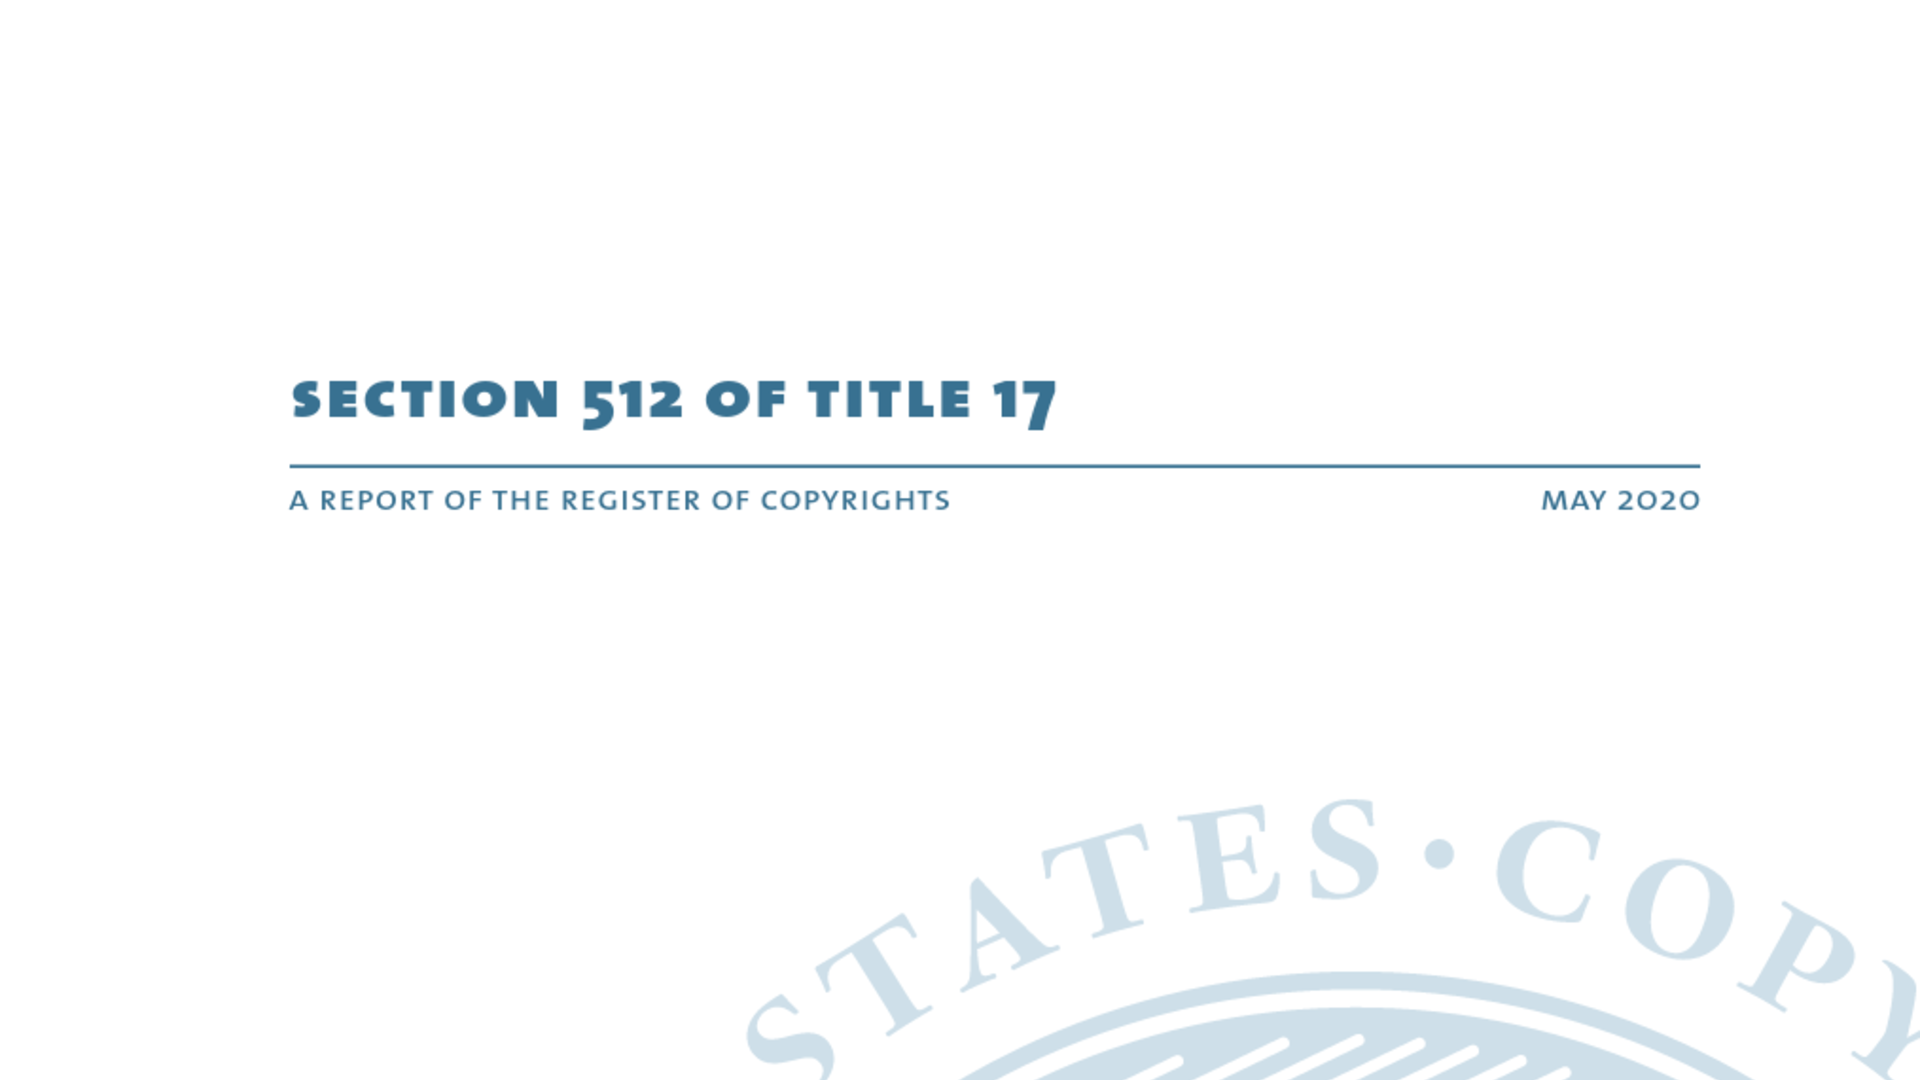 Fairness Rocks News United States Copyright Office Report: An Analysis of DMCA Section 512